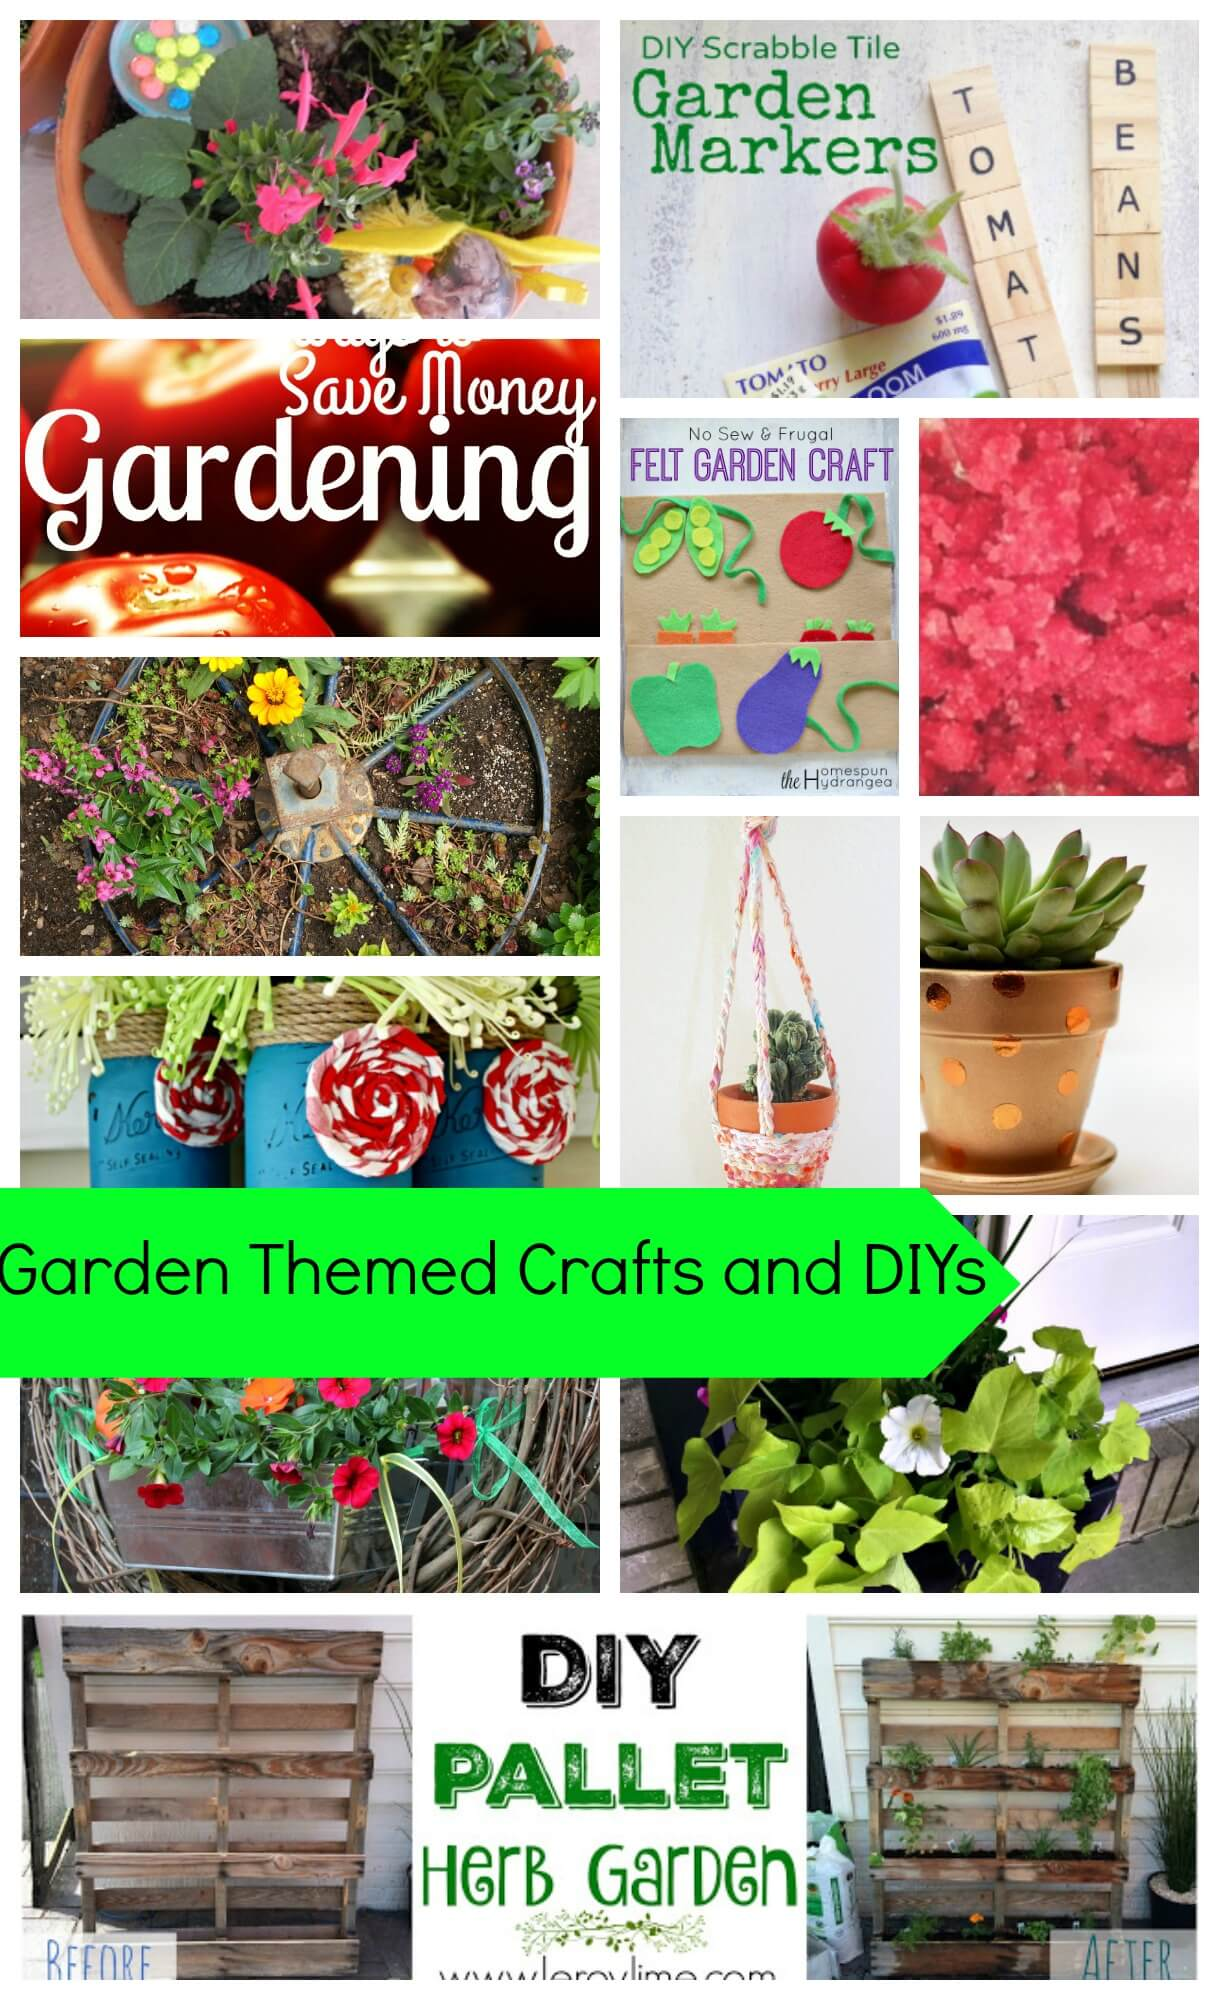 Garden Themed Crafts and DIYs